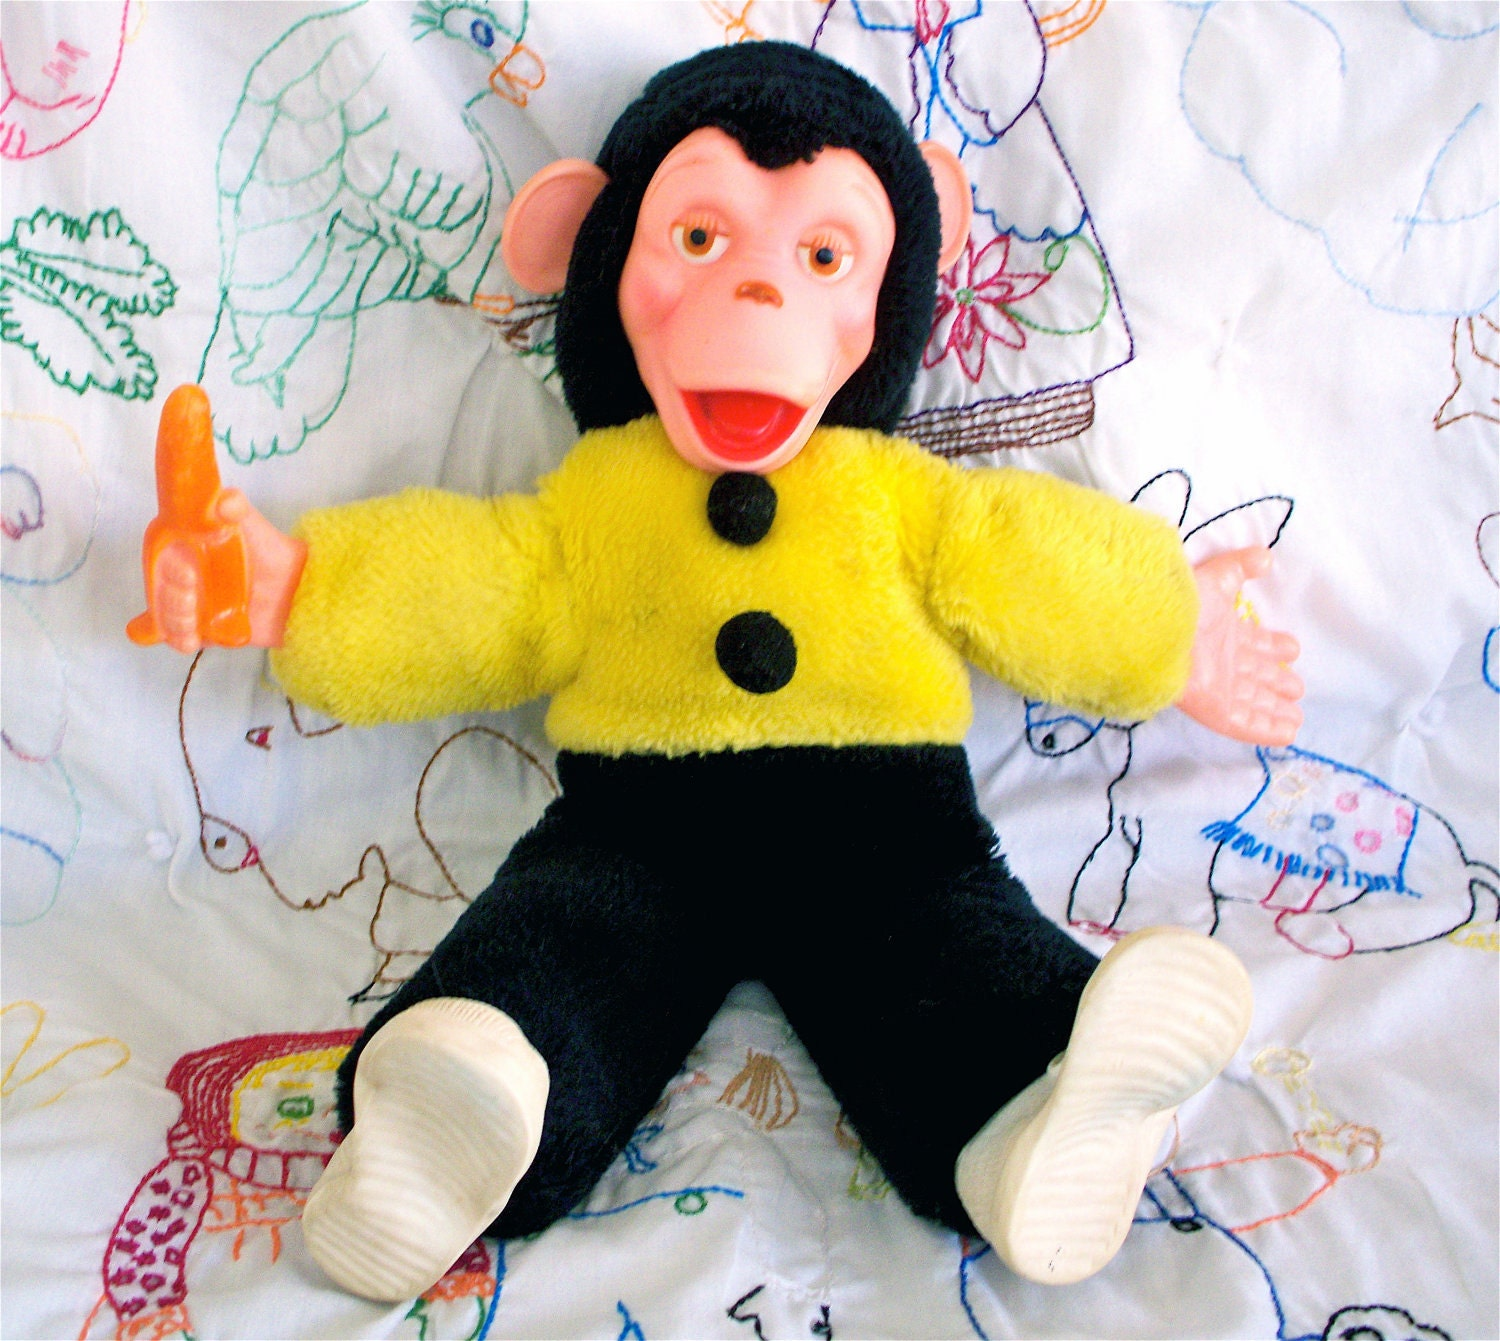 Vintage  Kitsch Howdy Doody Zippy The Monkey Vintage Chimp Doll Rubber Face Plush  Toy